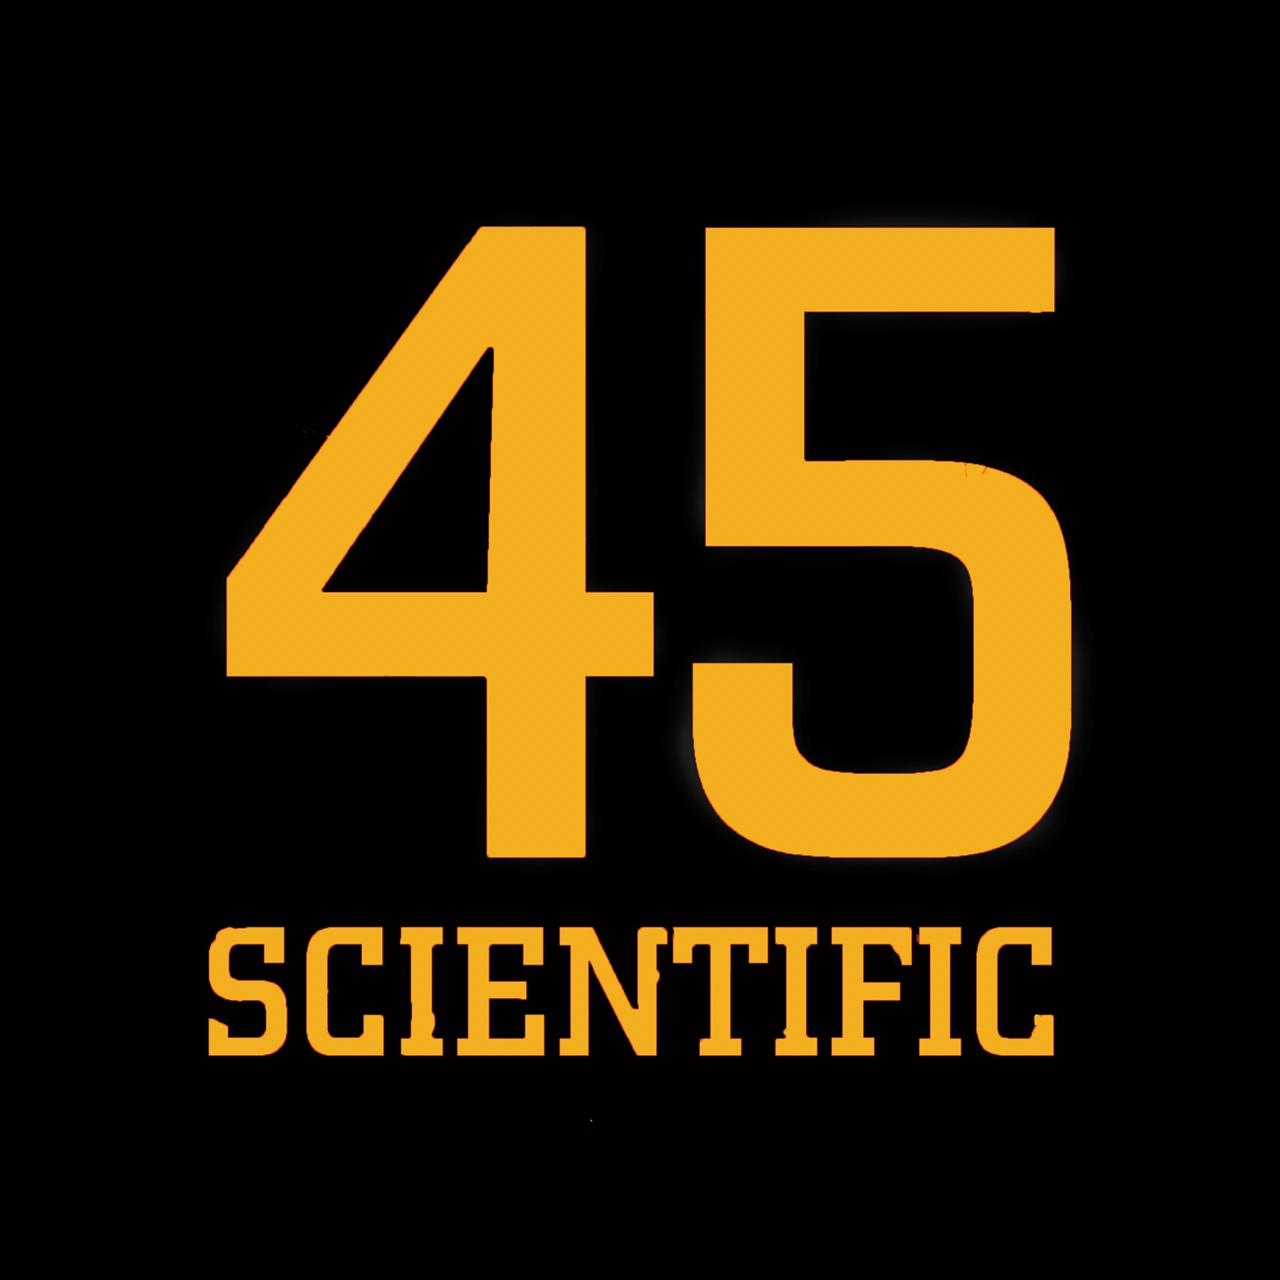 s45 SCIENTIFIC